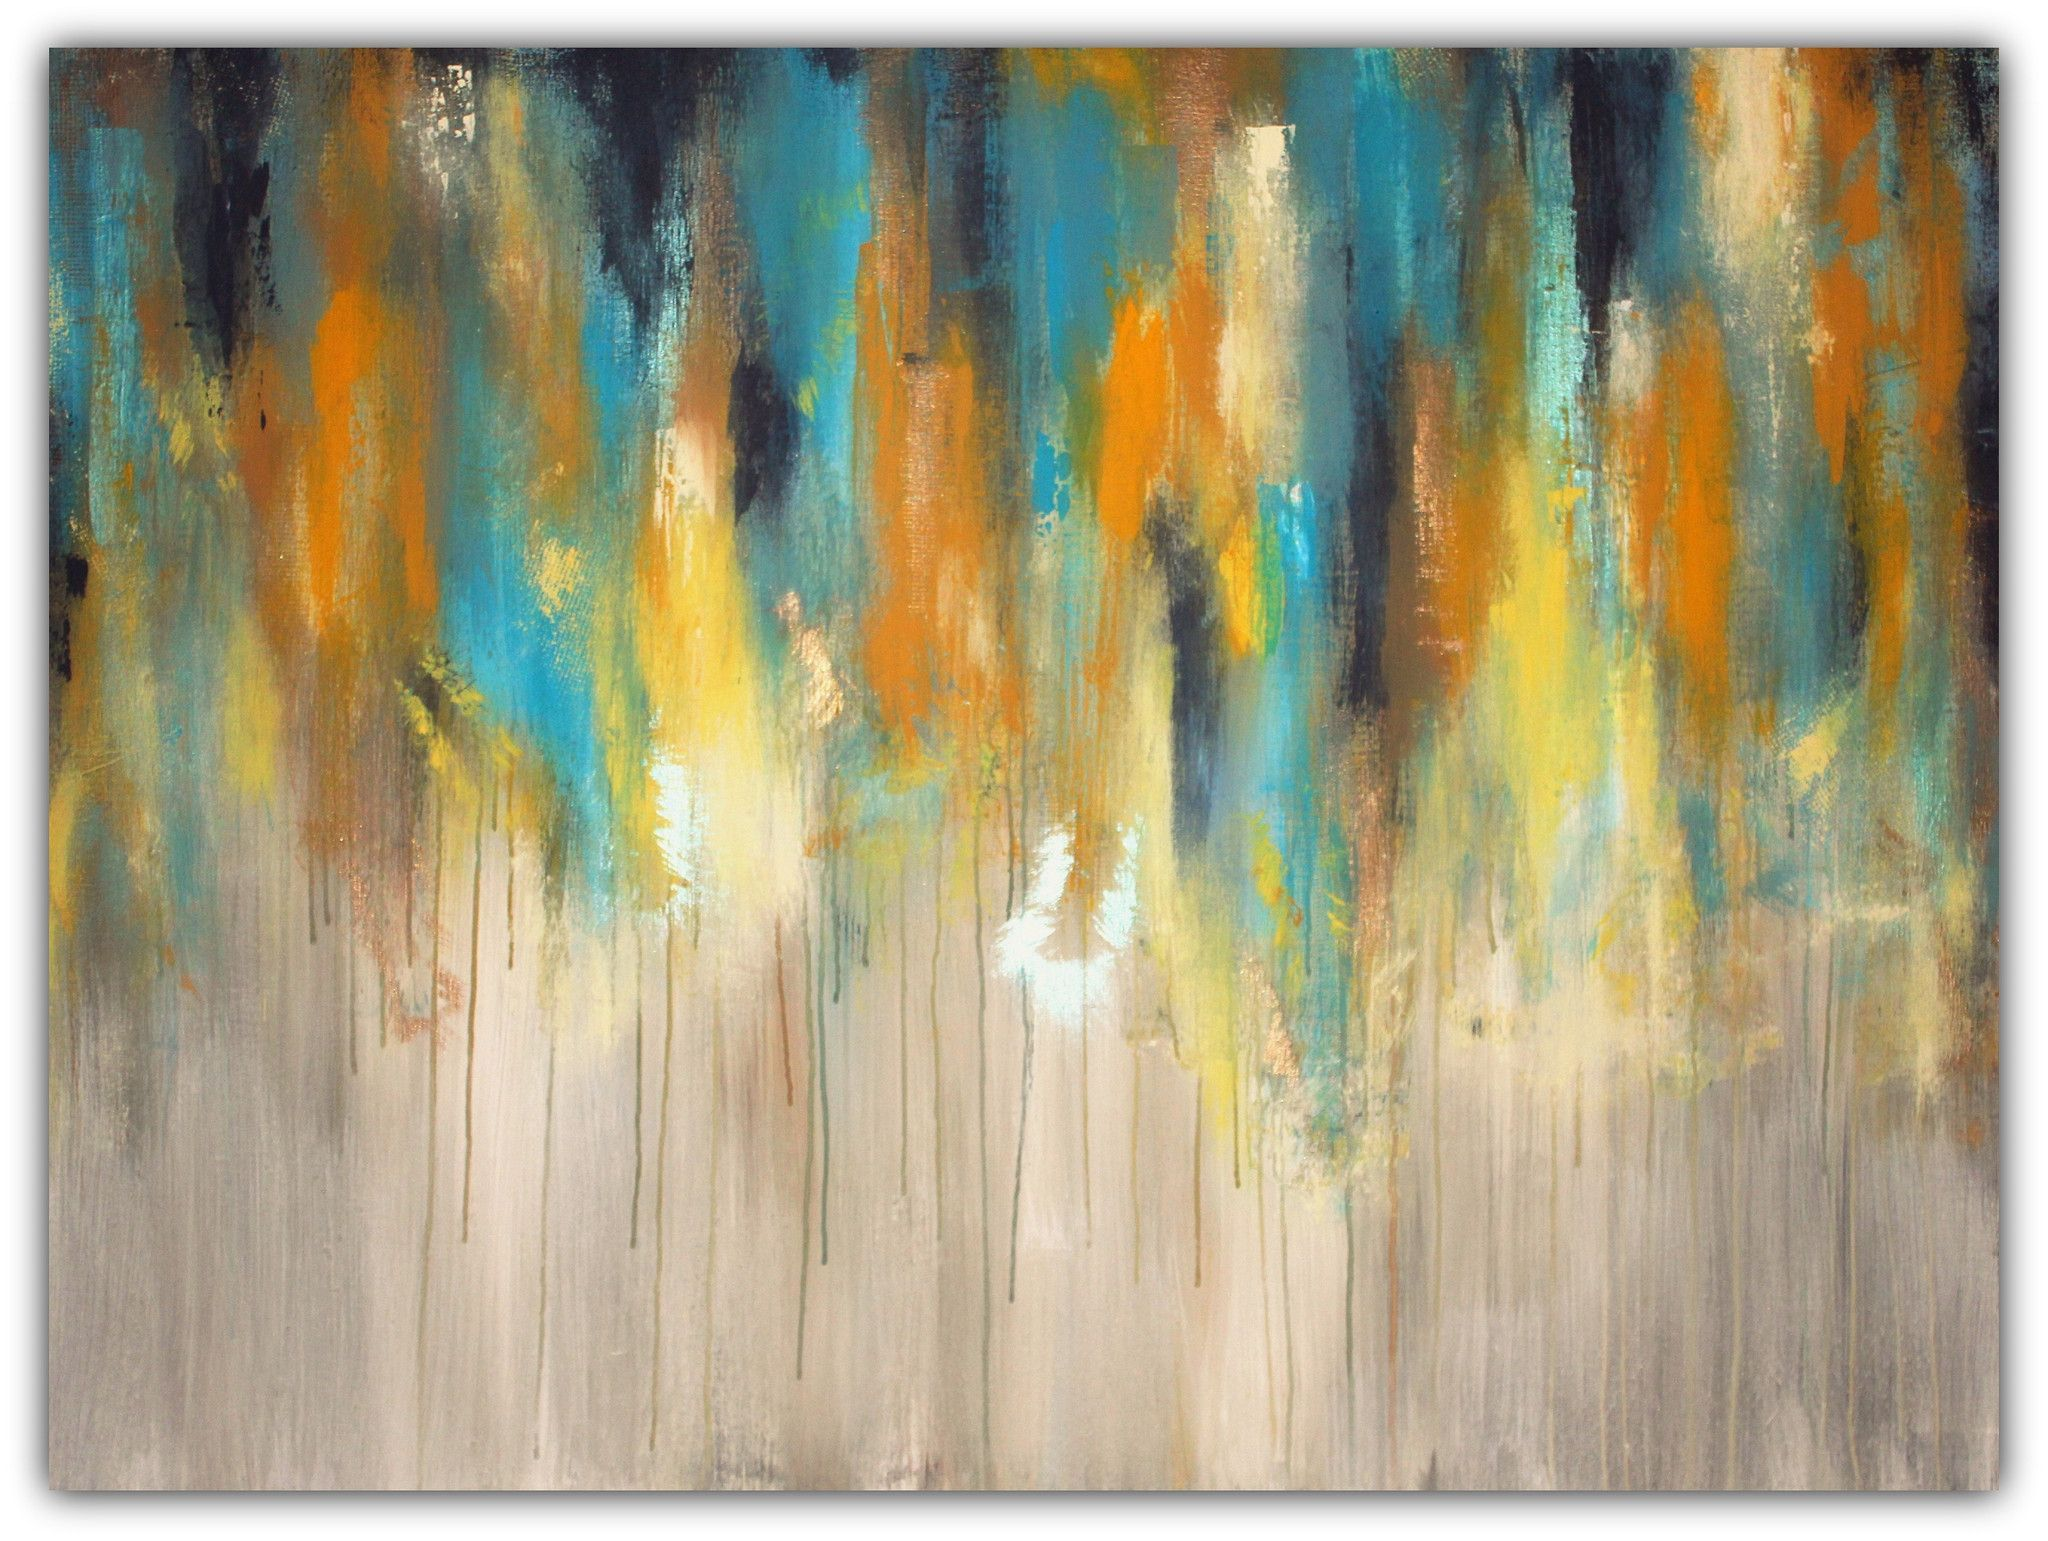 Large Abstract Painting - Blue, Yellow and Grey Wall Art in 2018 ...